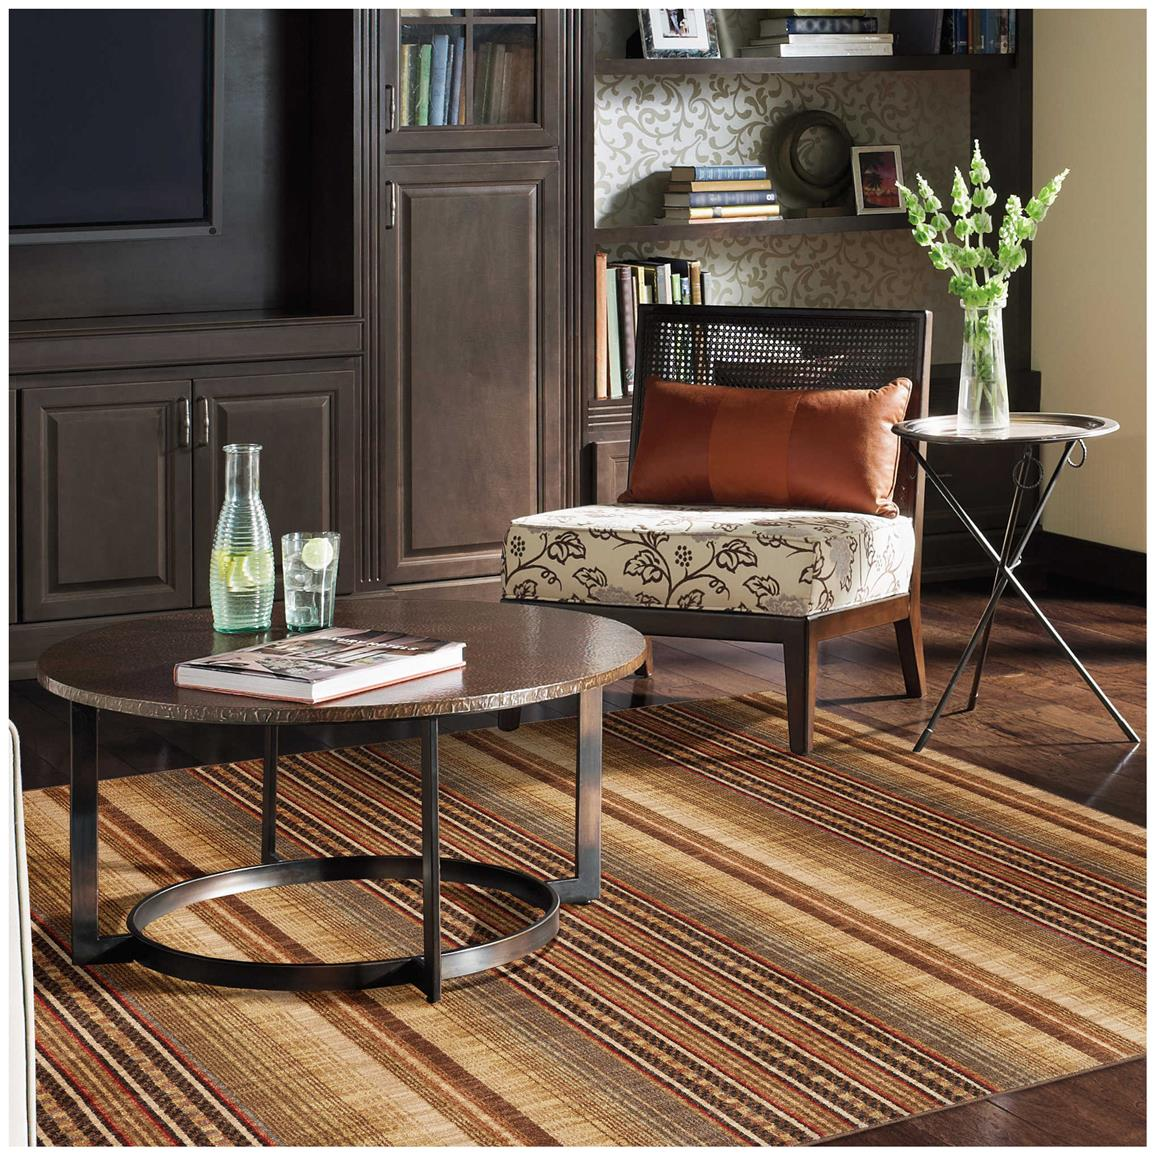 Rustic hues of transitional, horizontal stripes showcase your floor and decor